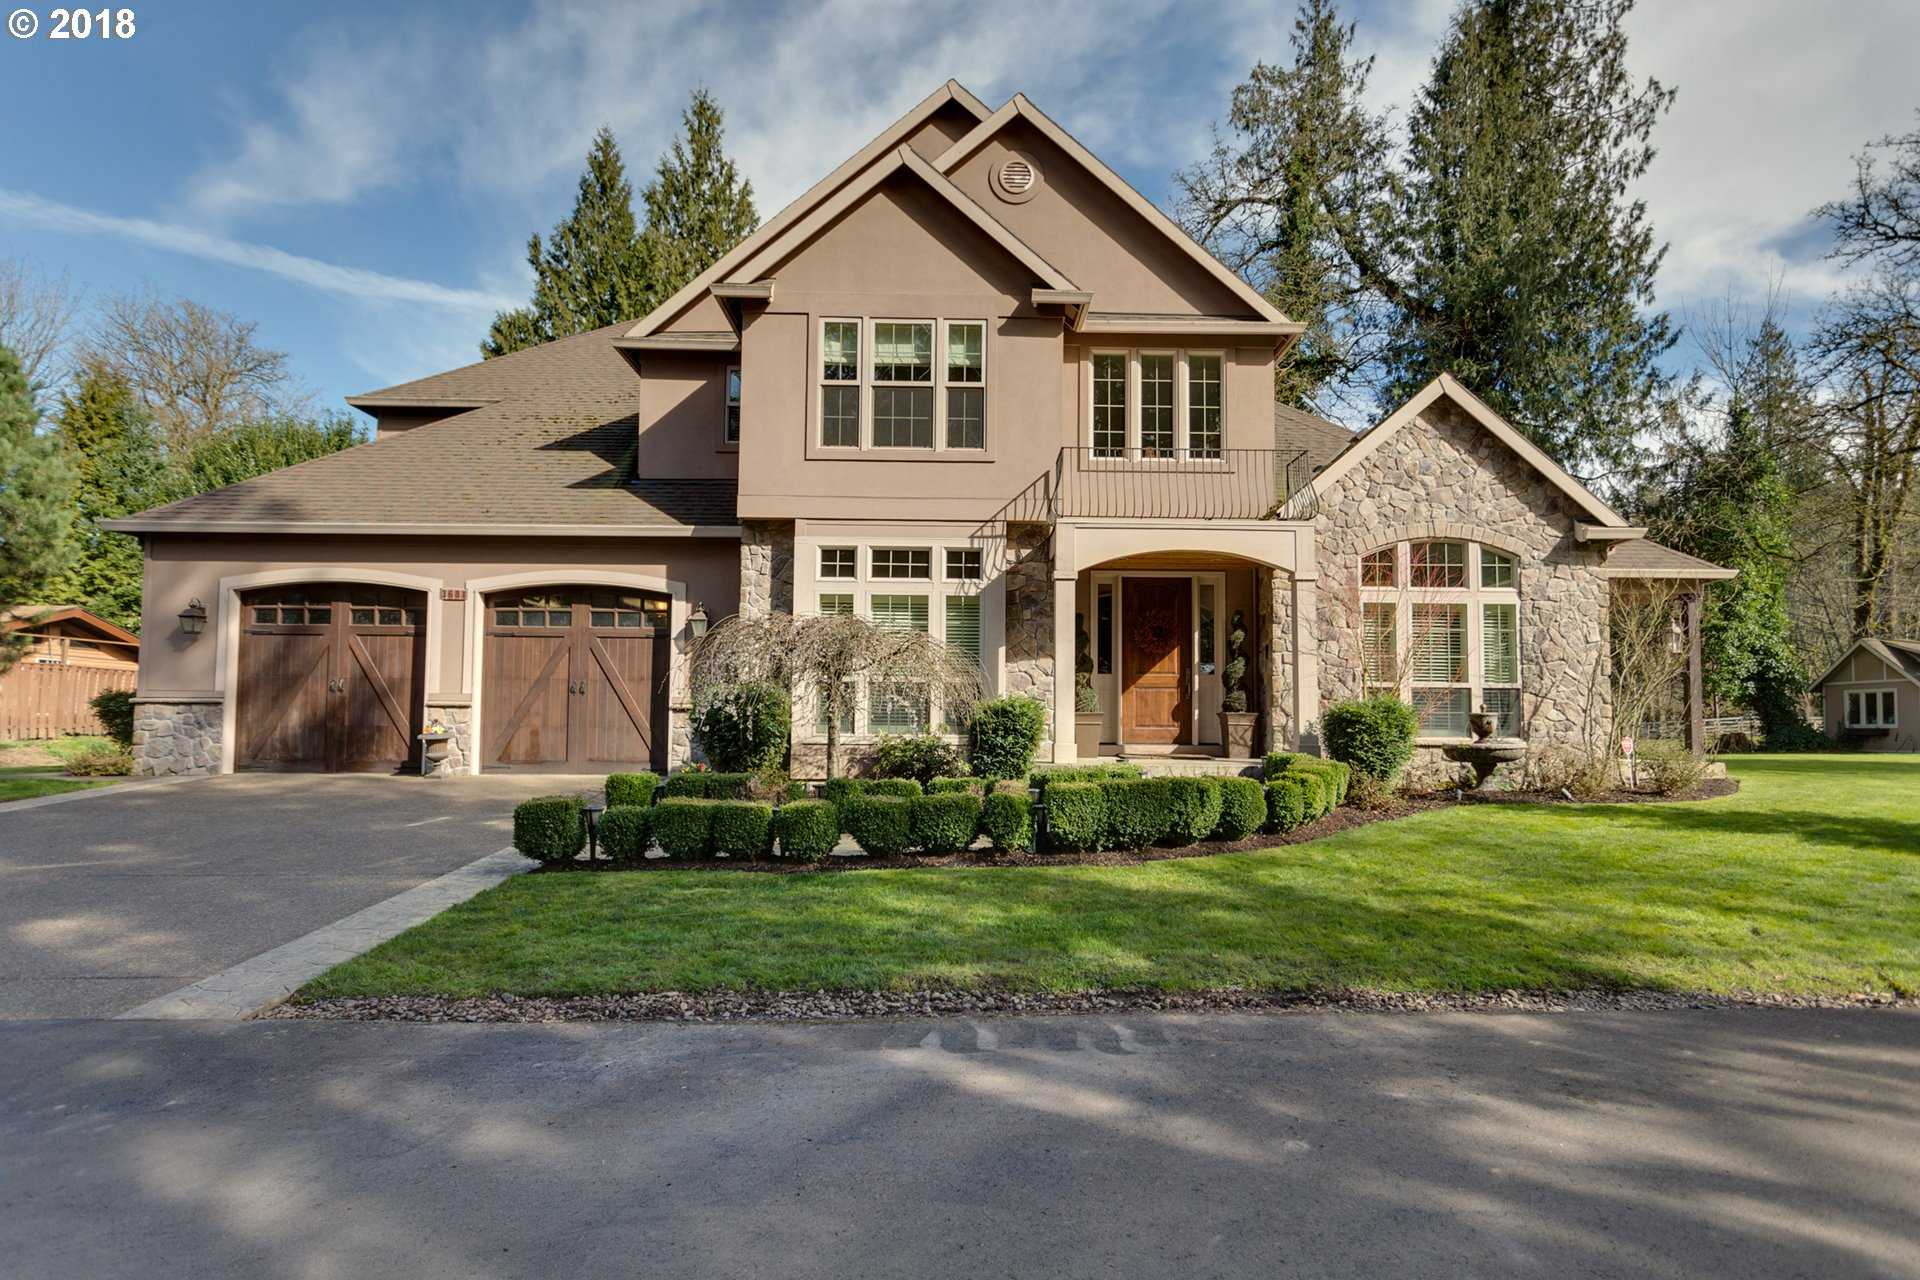 $1,500,000 - 4Br/4Ba -  for Sale in Stafford, Tualatin